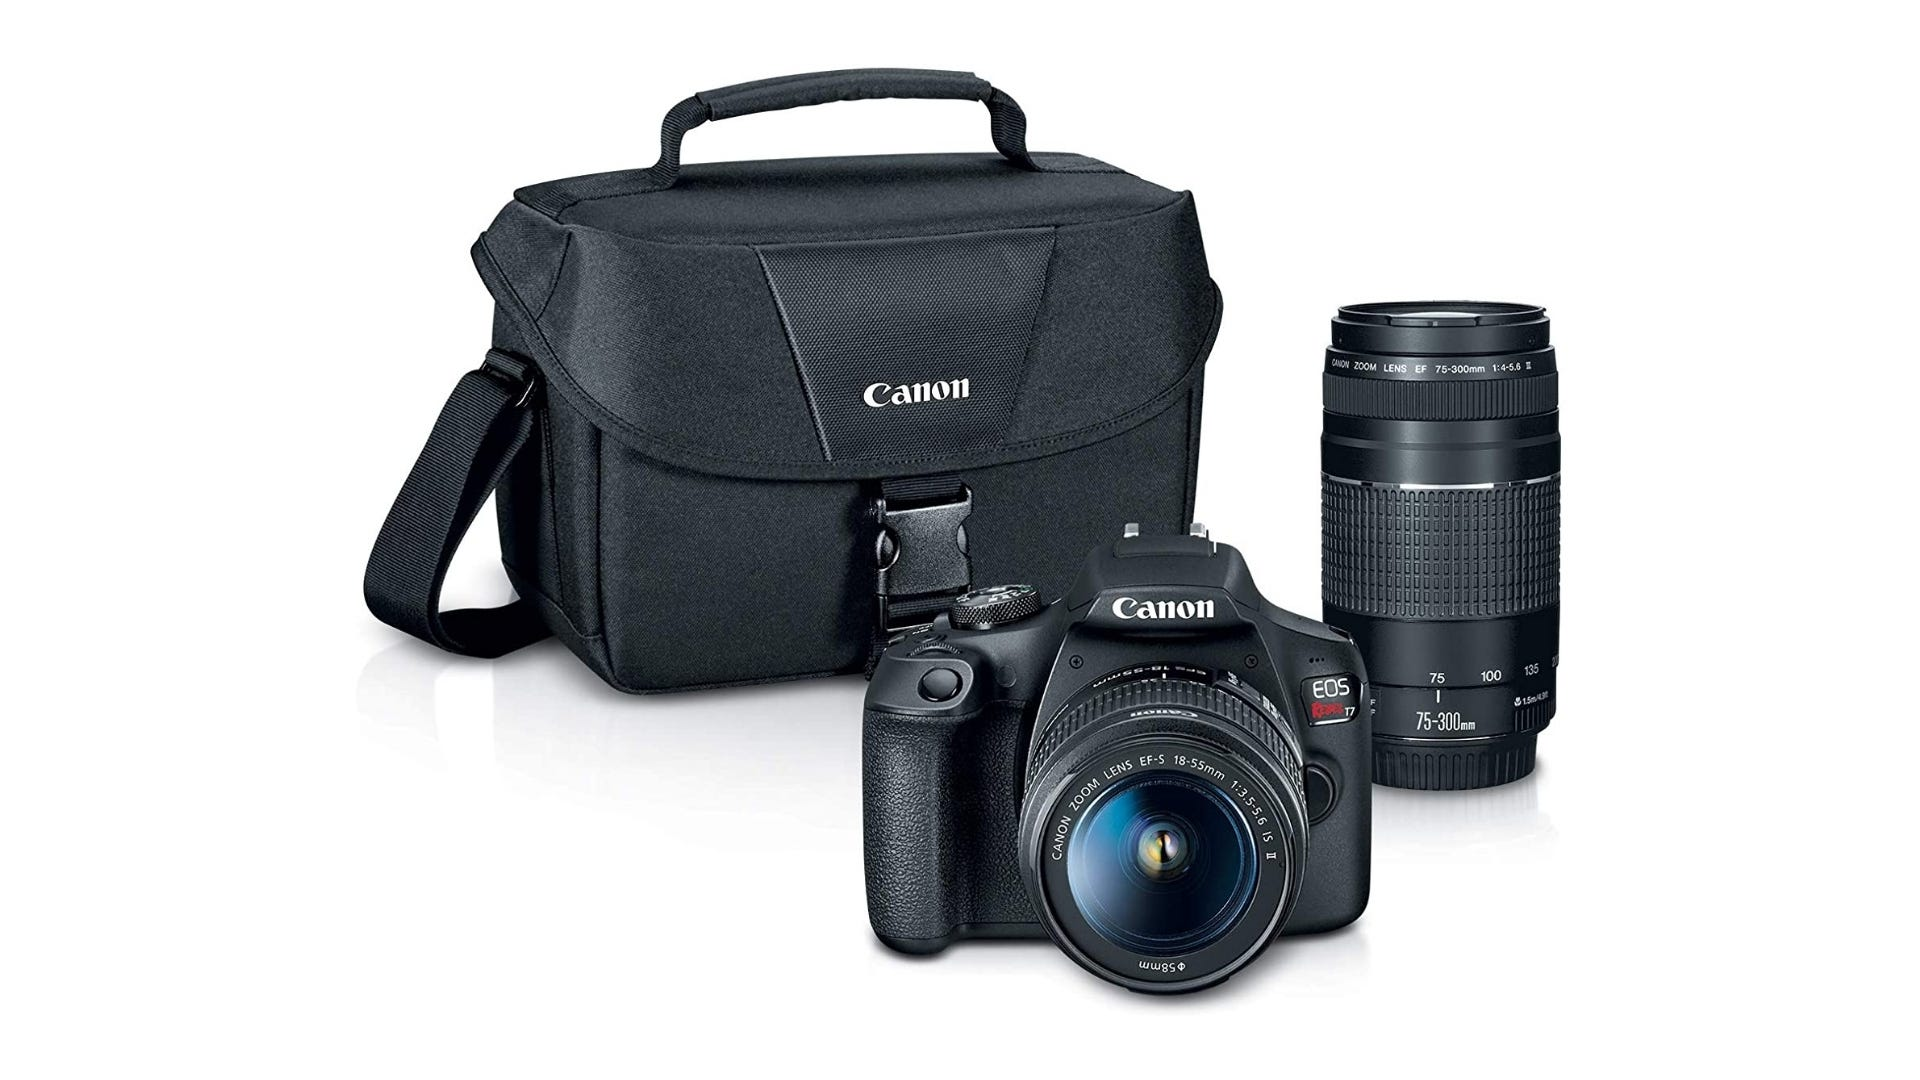 The Canon DSLR camera kit with bag and lens.